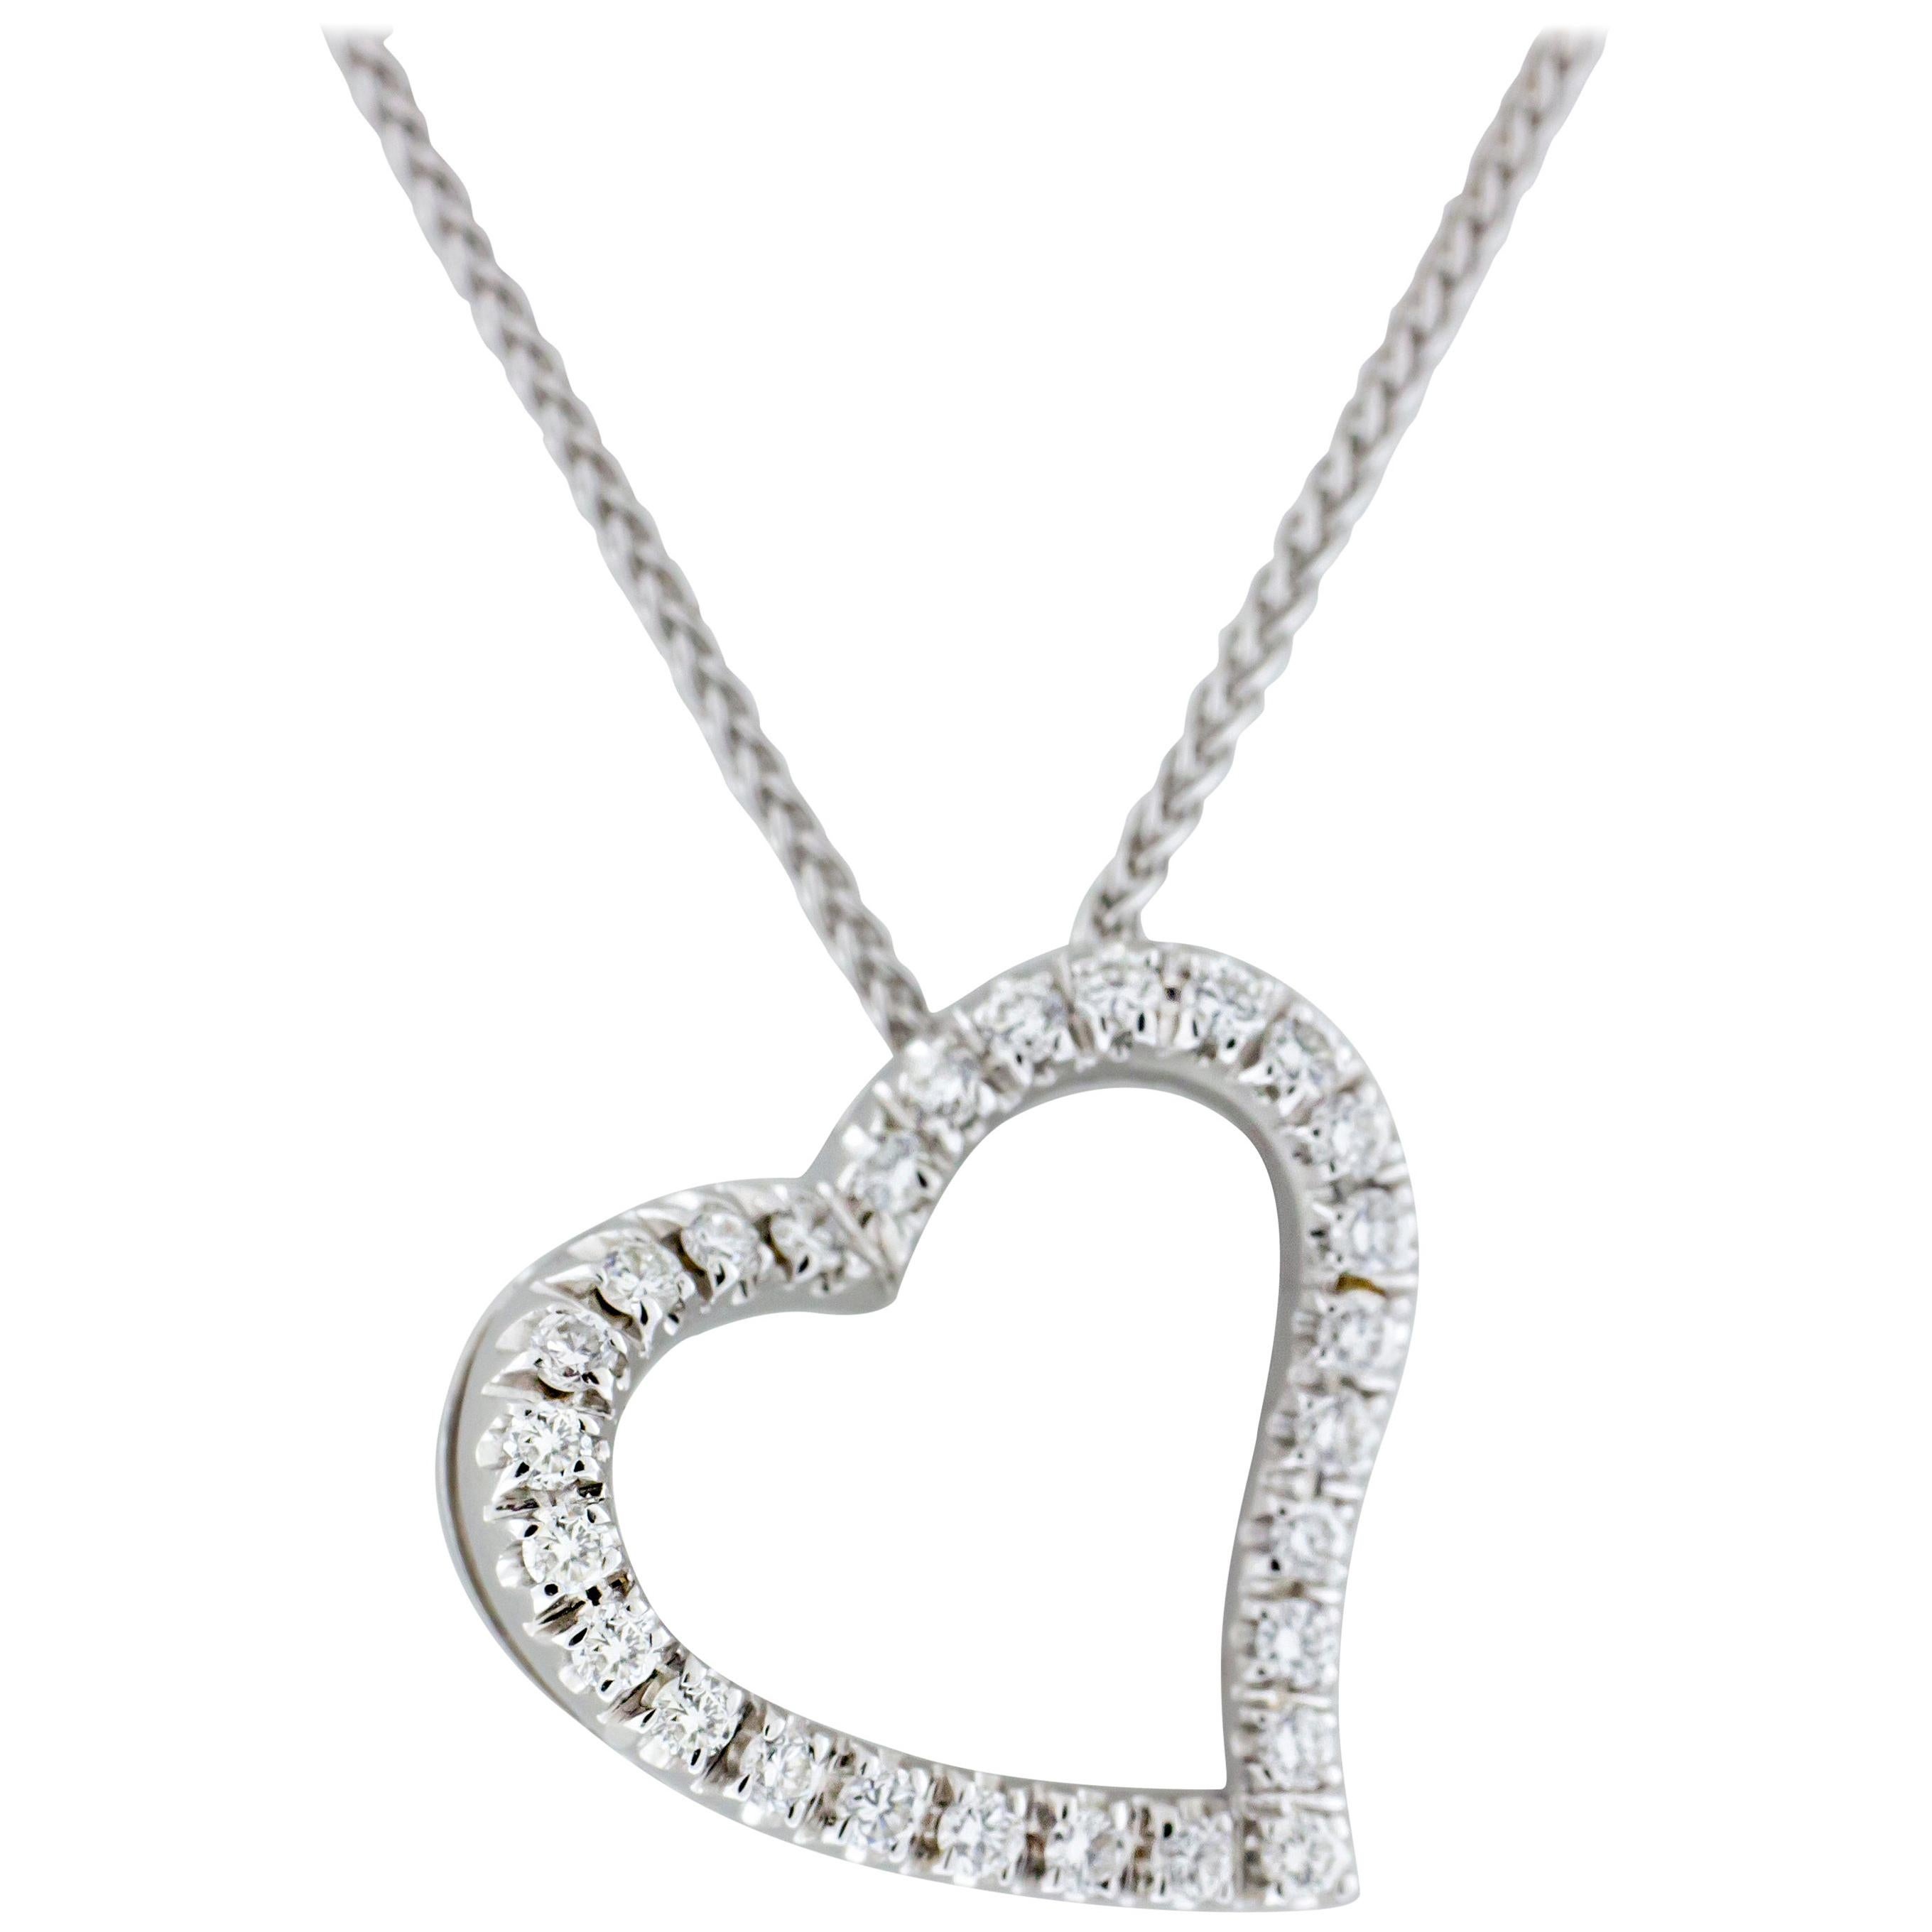 Diamond, Vintage and Antique Necklaces - 21,041 For Sale at 1stdibs